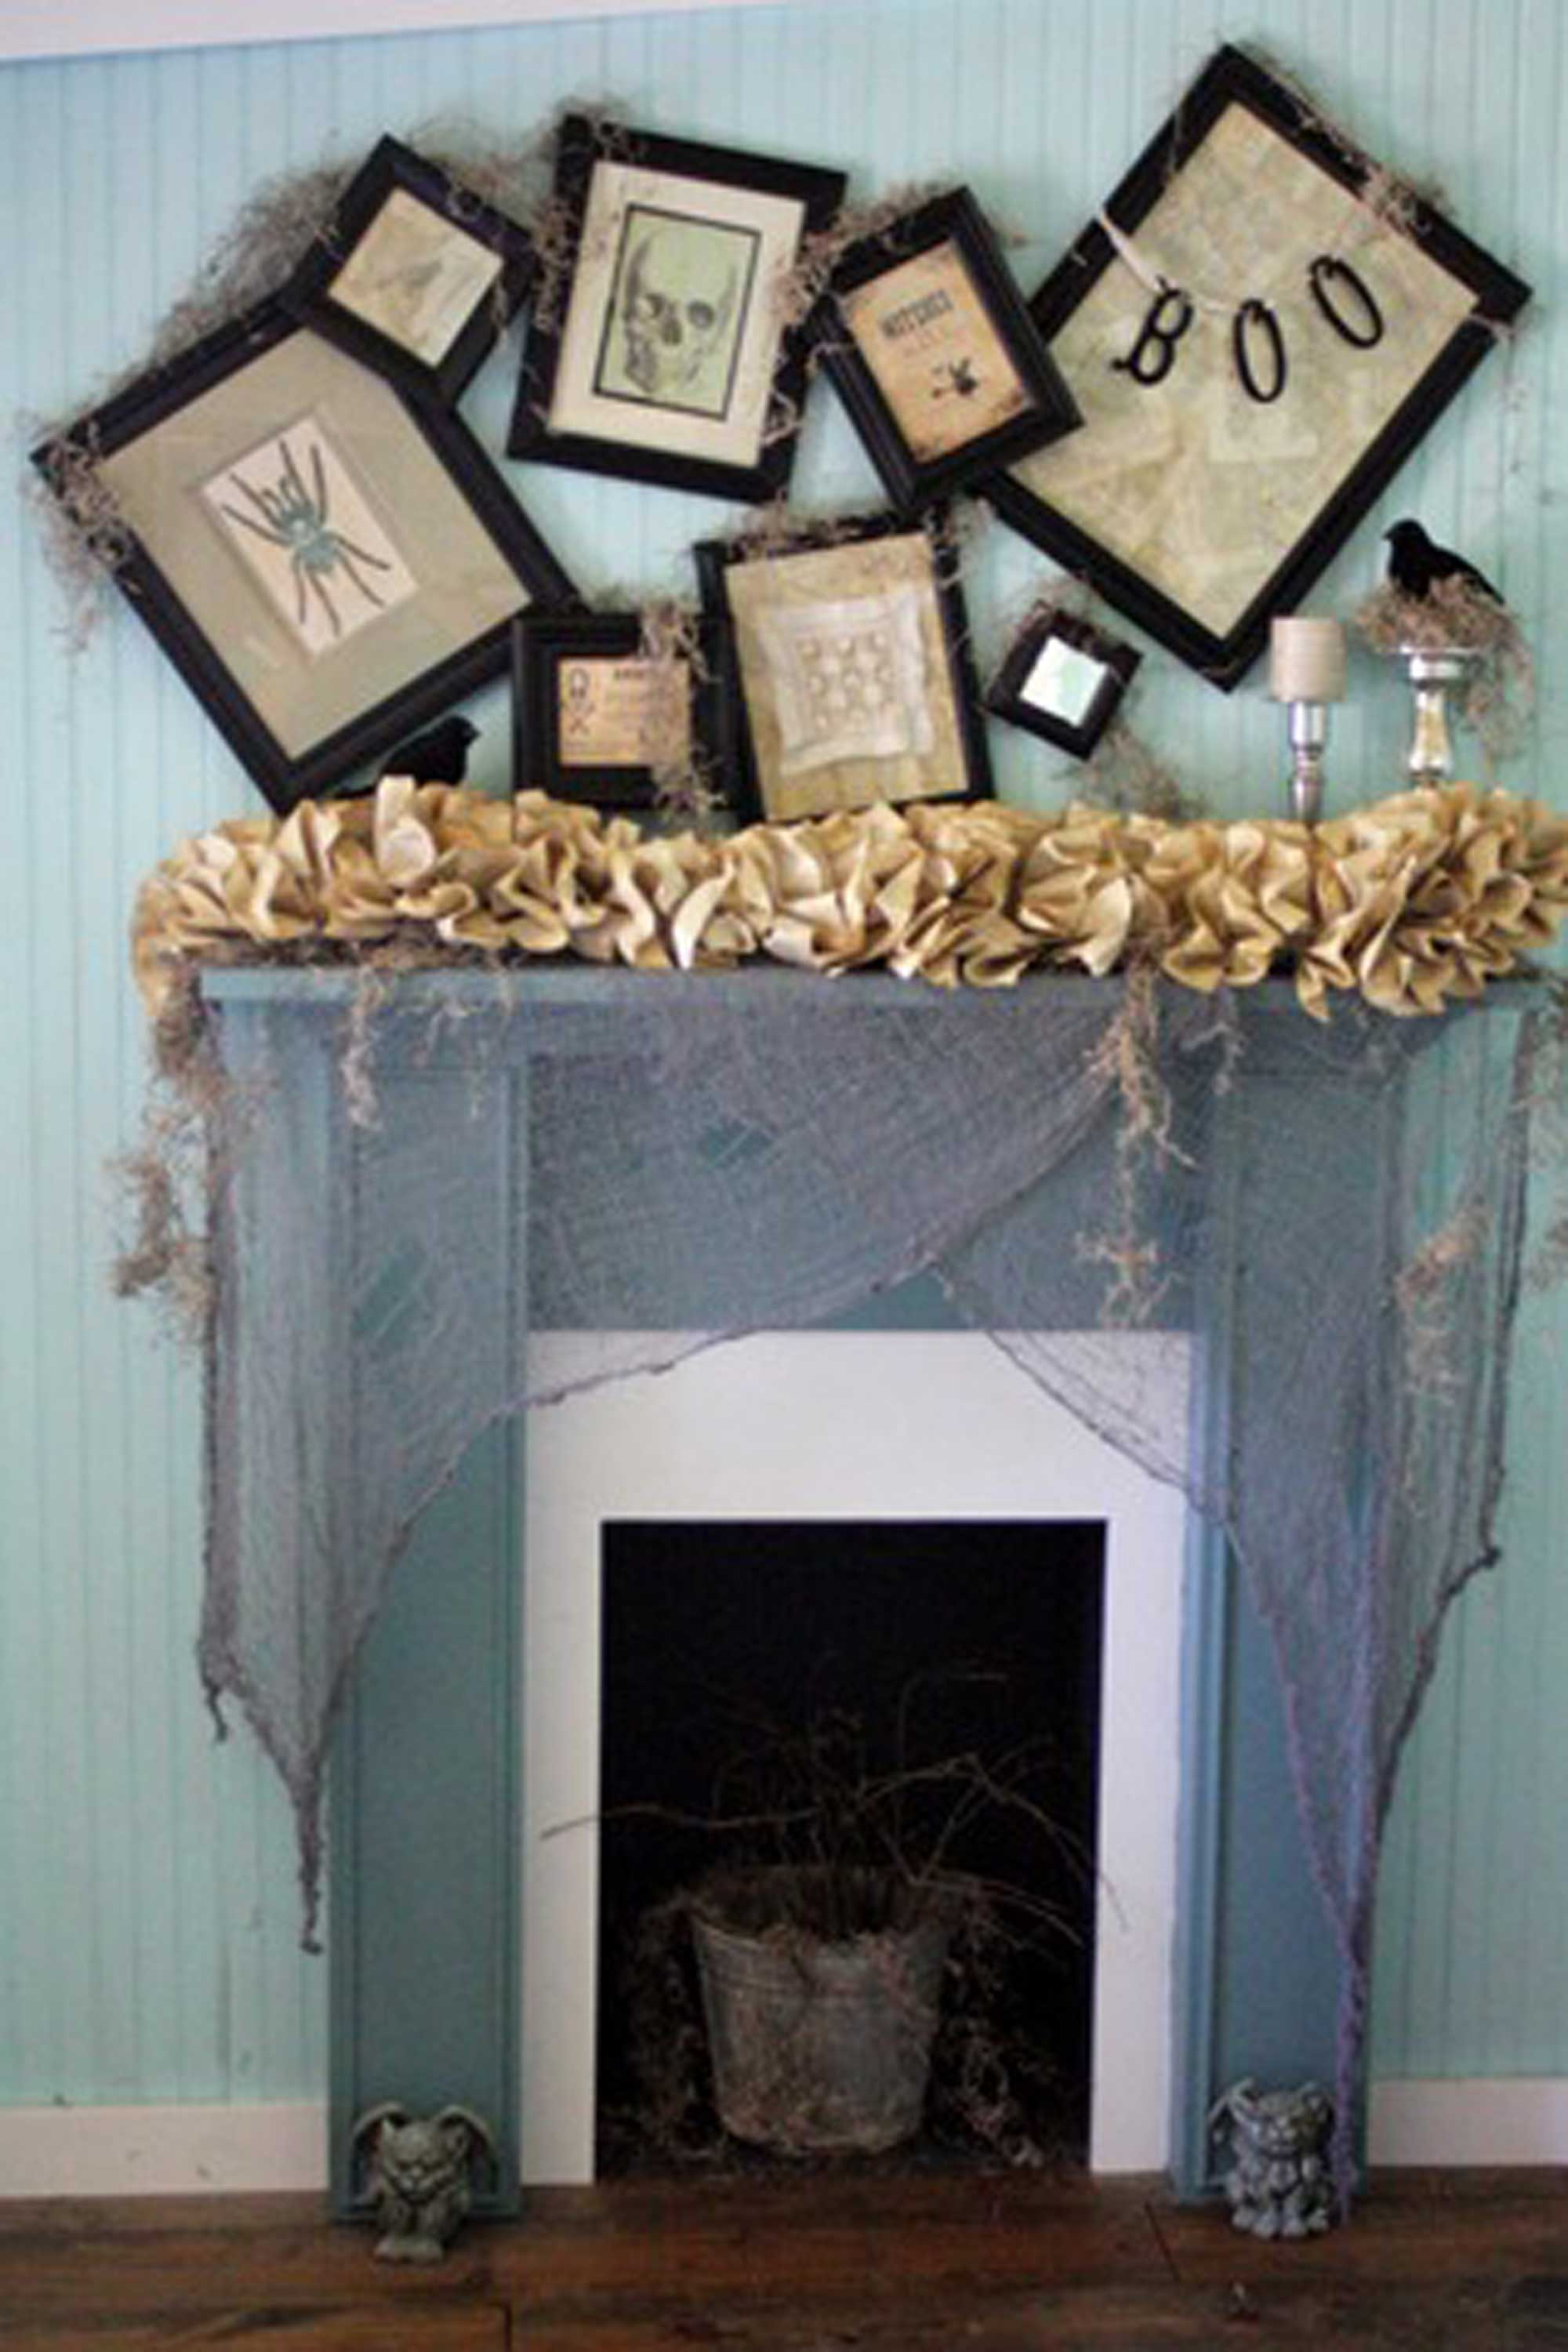 35 fall mantel decorating ideas halloween mantel decorations - Halloween Ideas For Home